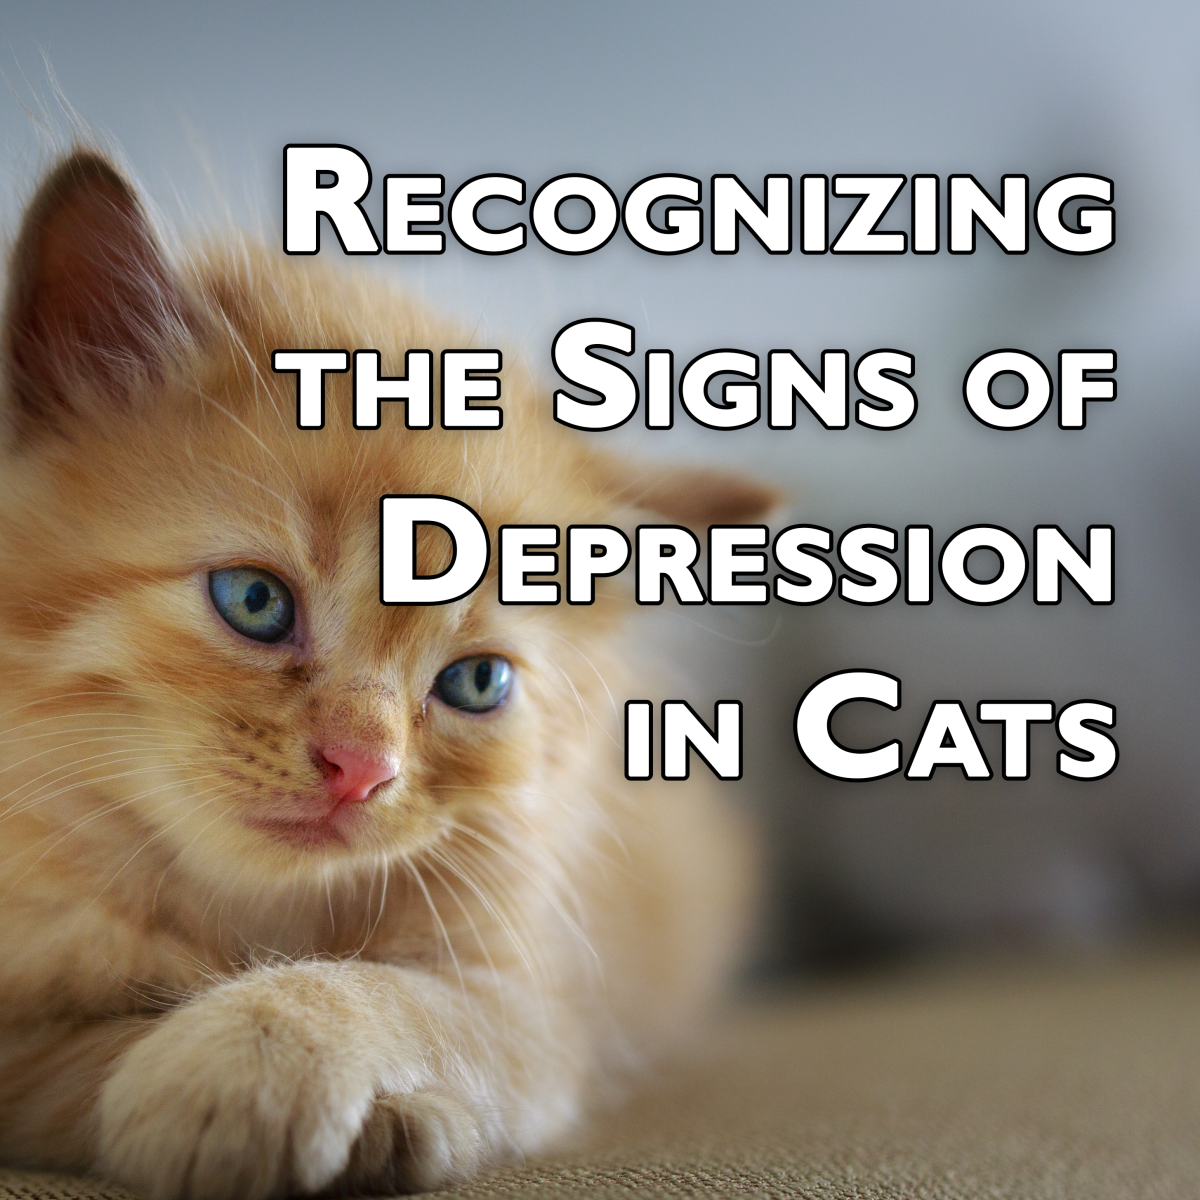 Recognizing the Signs of Depression in Cats: How to Know If Your Cat Is Depressed